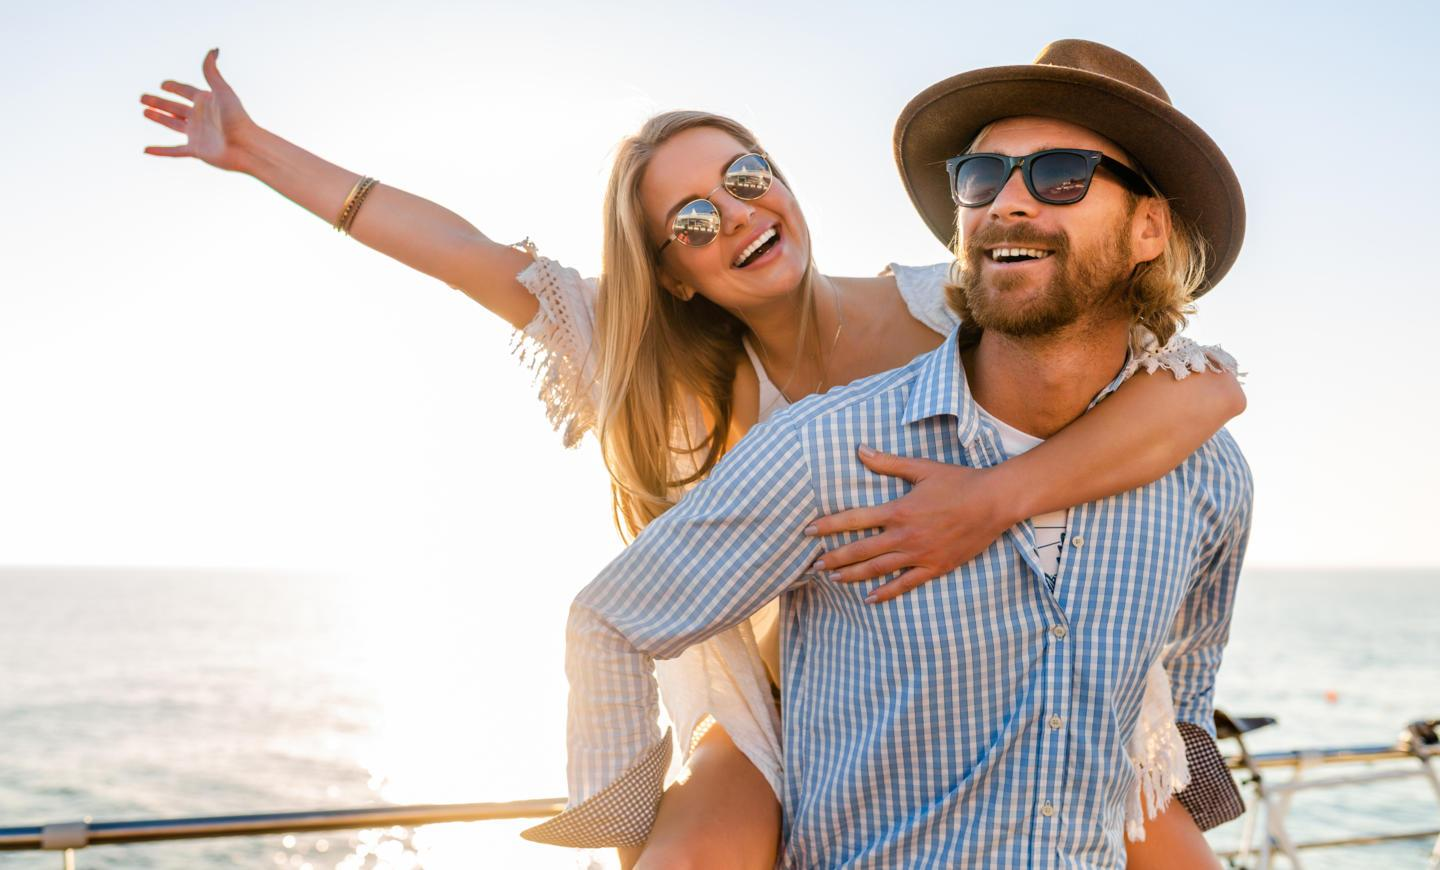 attractive-happy-couple-laughing-traveling-summer-by-sea.jpg